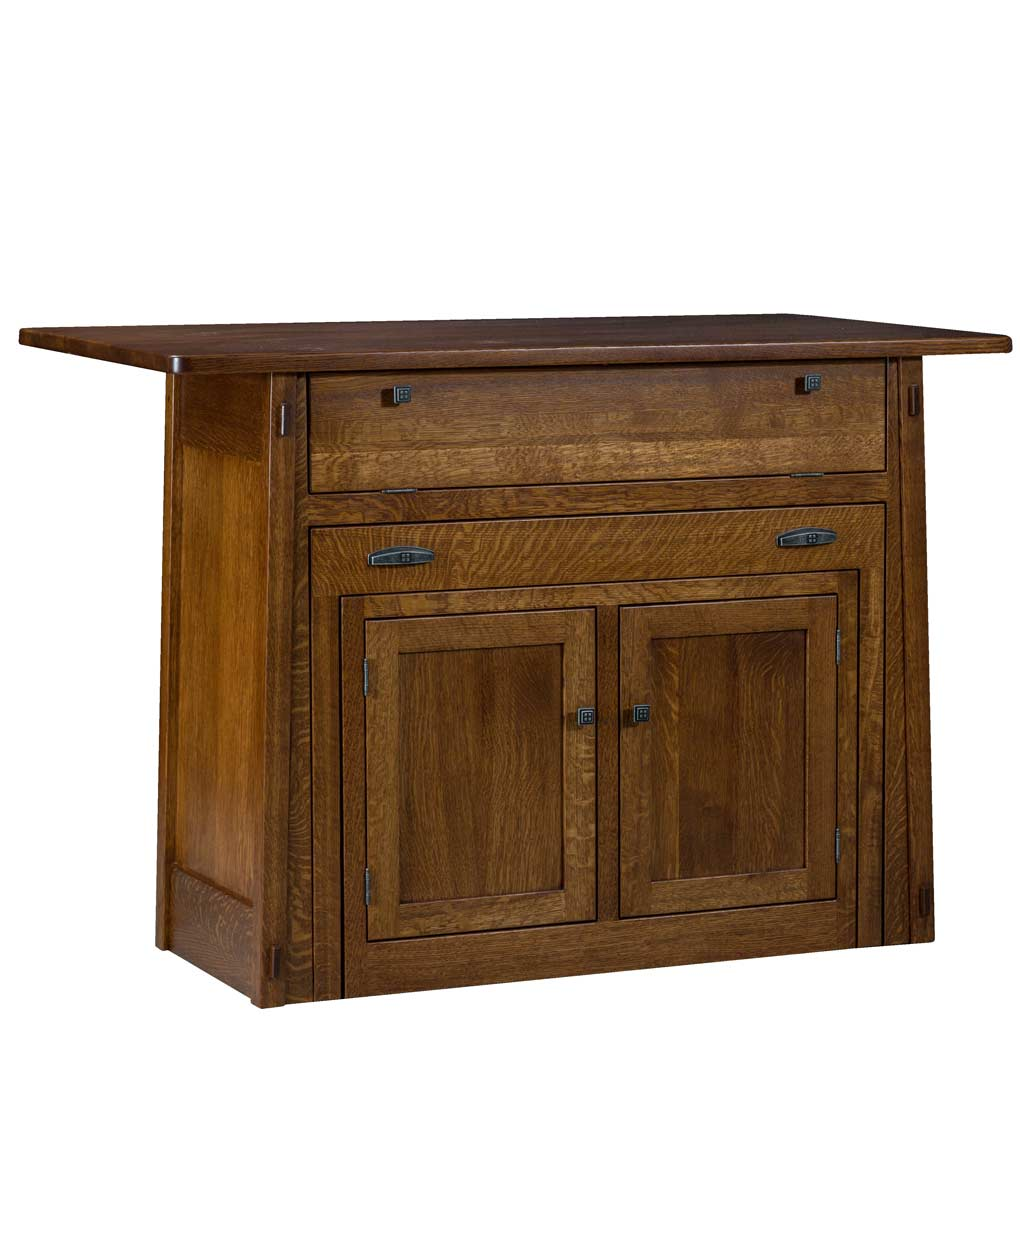 Colbran Frontier Island Amish Direct Furniture